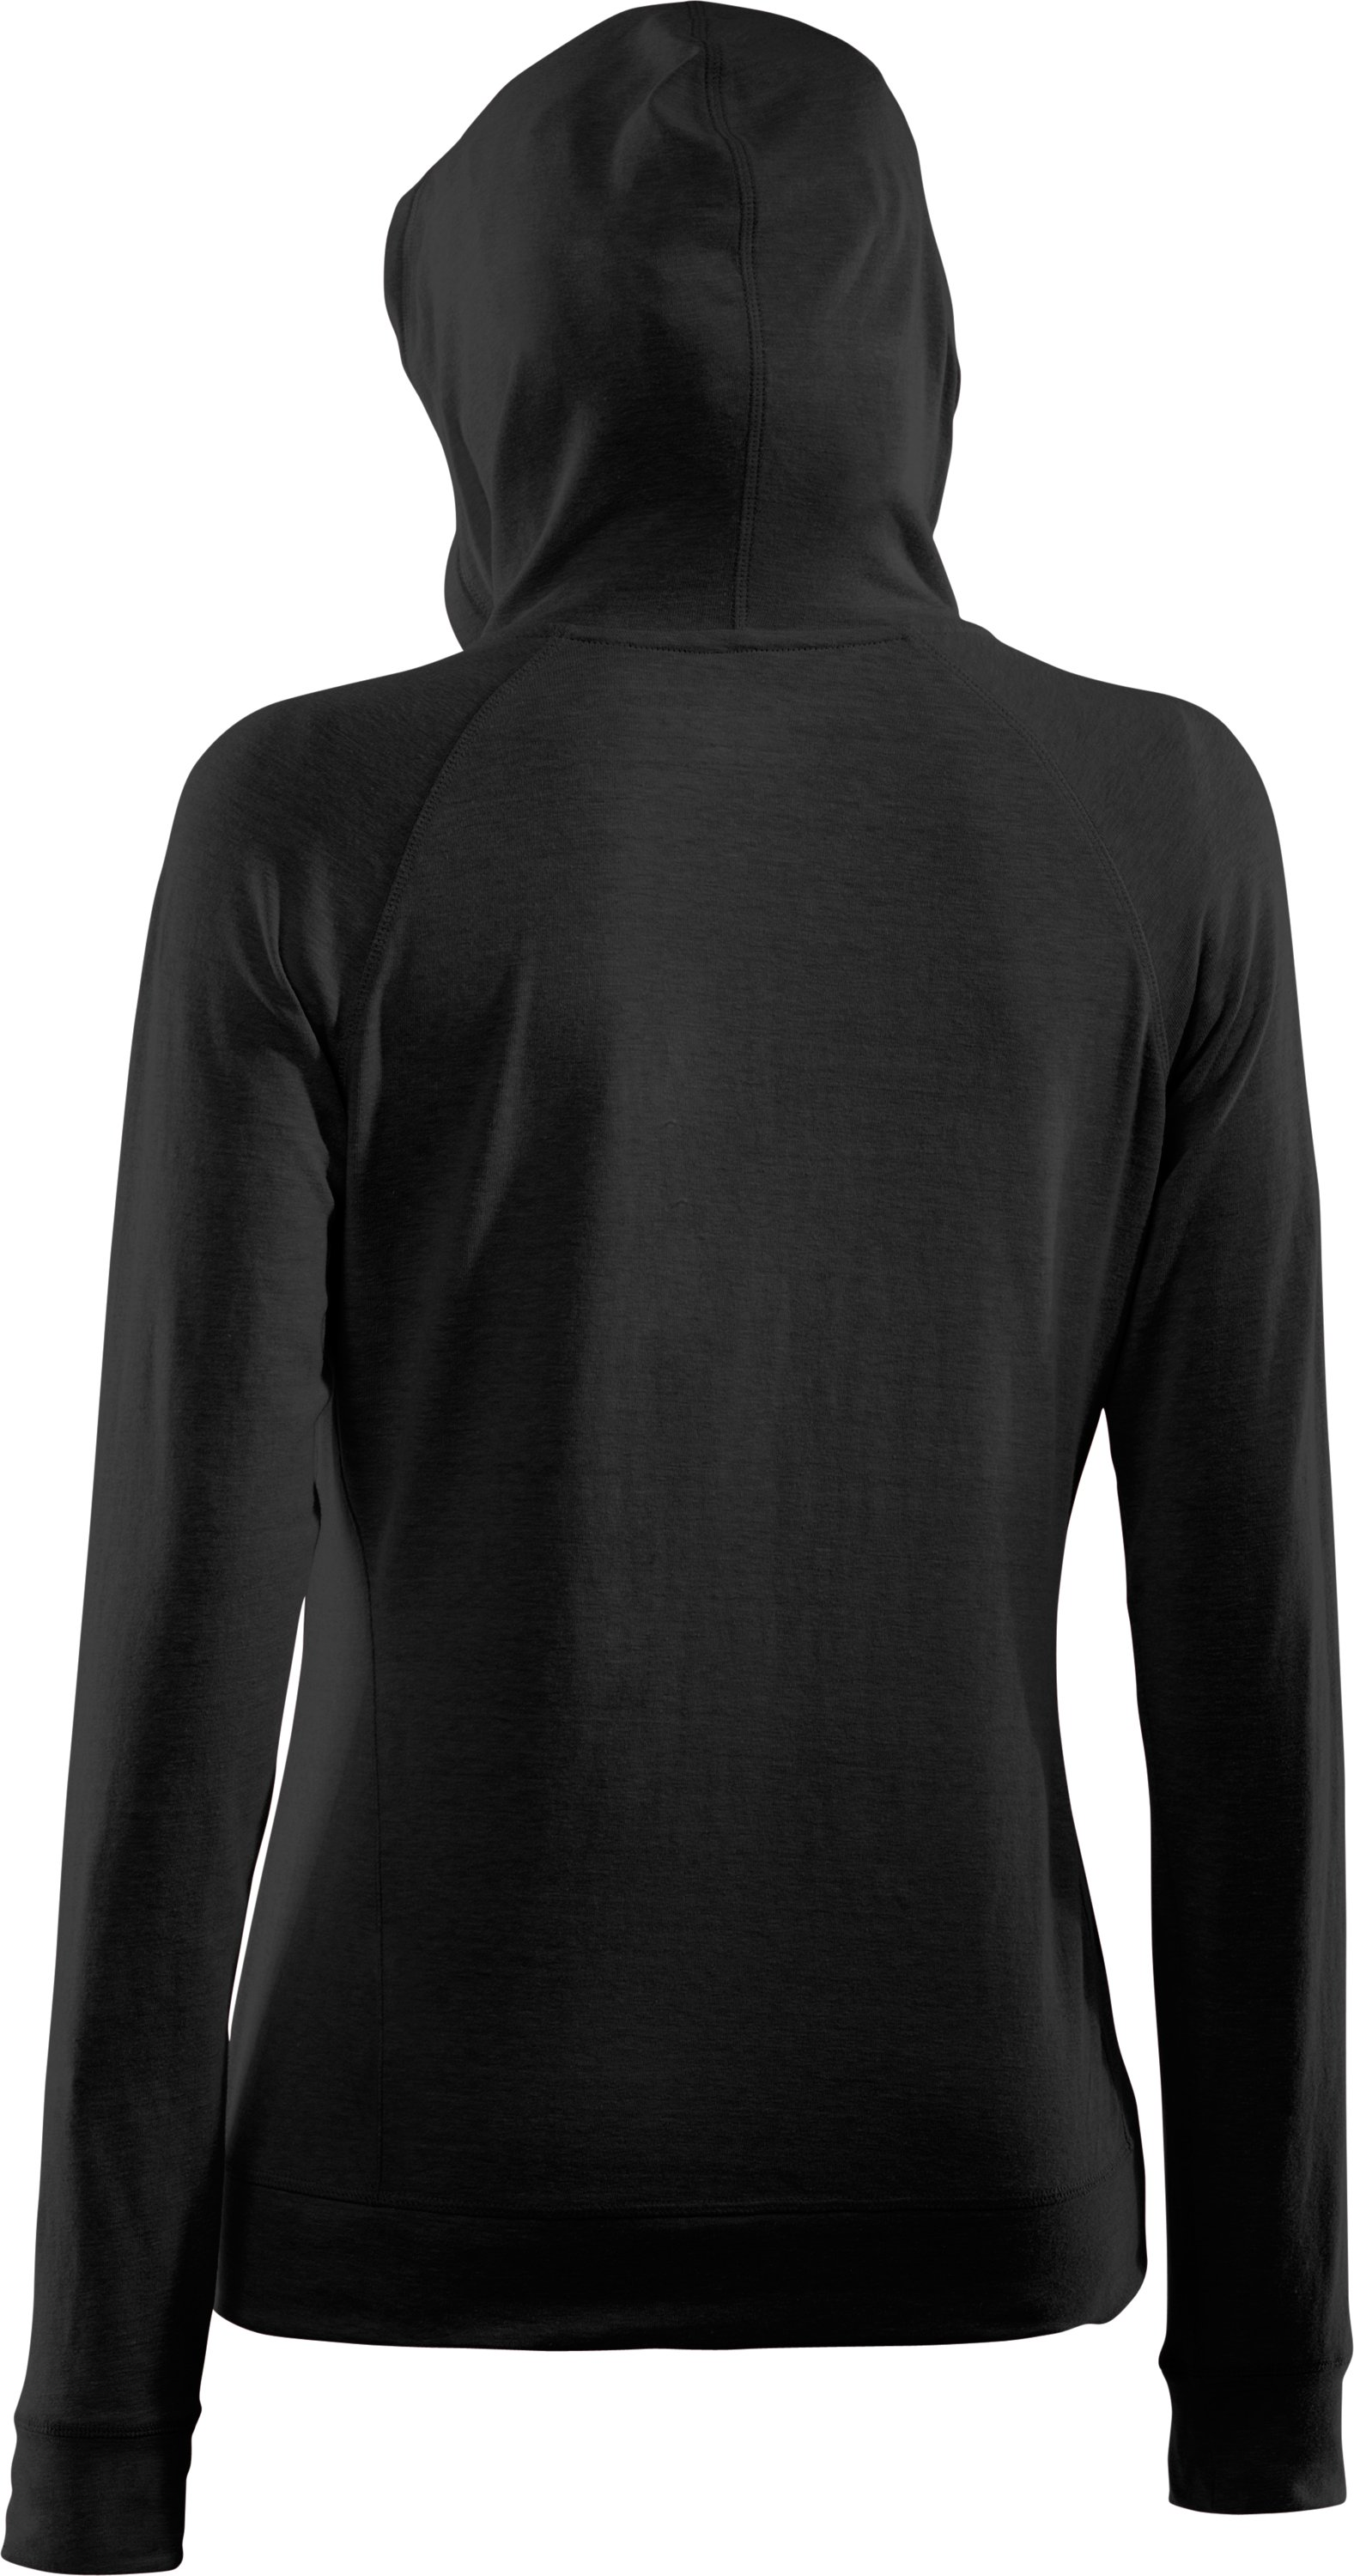 Women's Charged Cotton® Full Zip Hoodie, Black , undefined